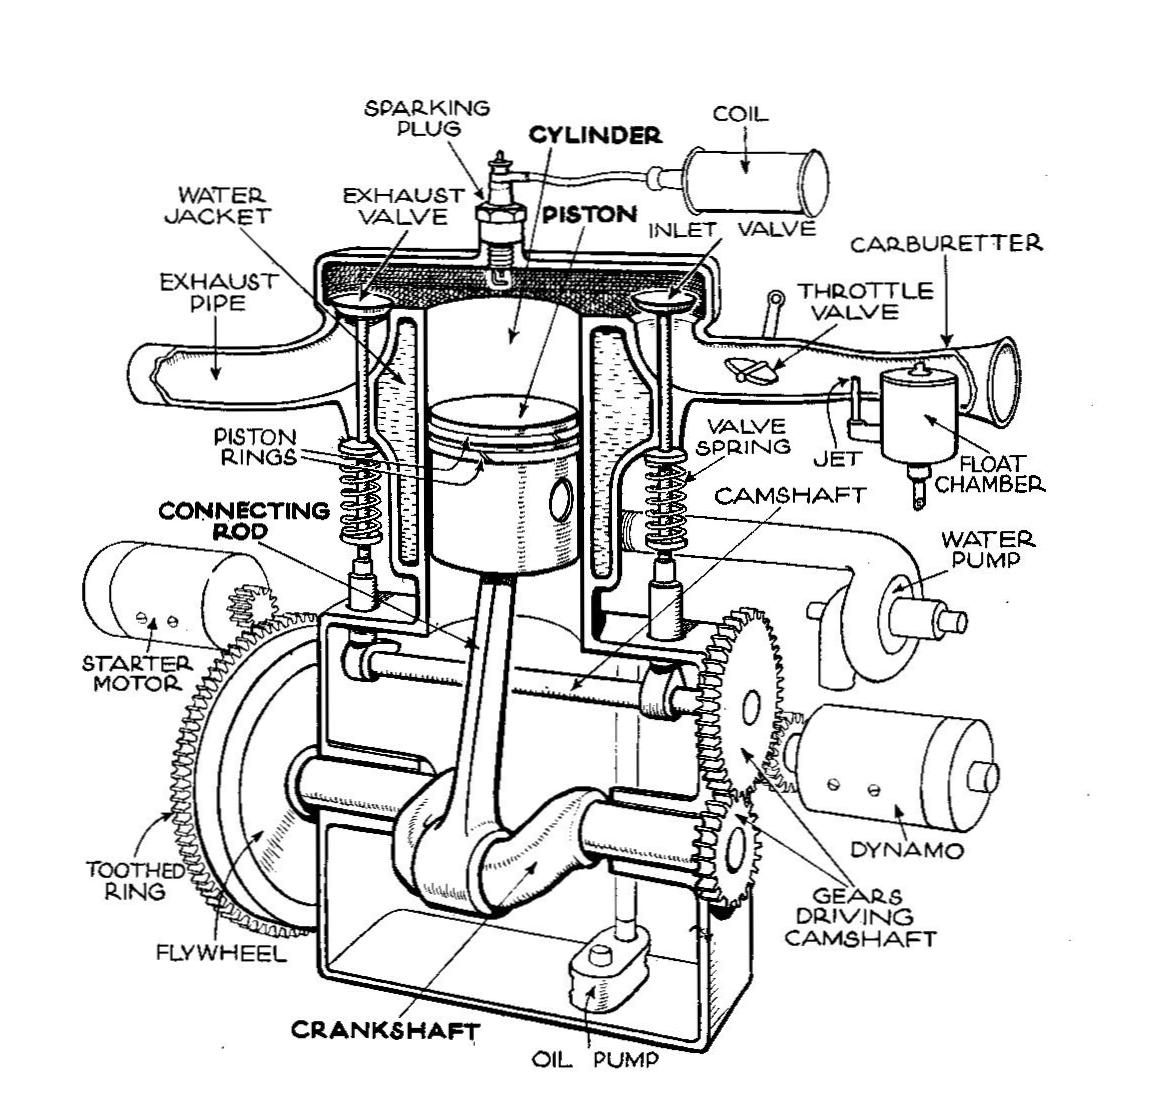 Honda Trx450r Wiring Diagram Of Motor in addition Thorium Mt besides Harley Motorcycle Parts Catalog moreover 2013 Harley Davidson Radio Wiring Diagram also Mikuni Carb Parts Diagram. on 2000 harley davidson service manual